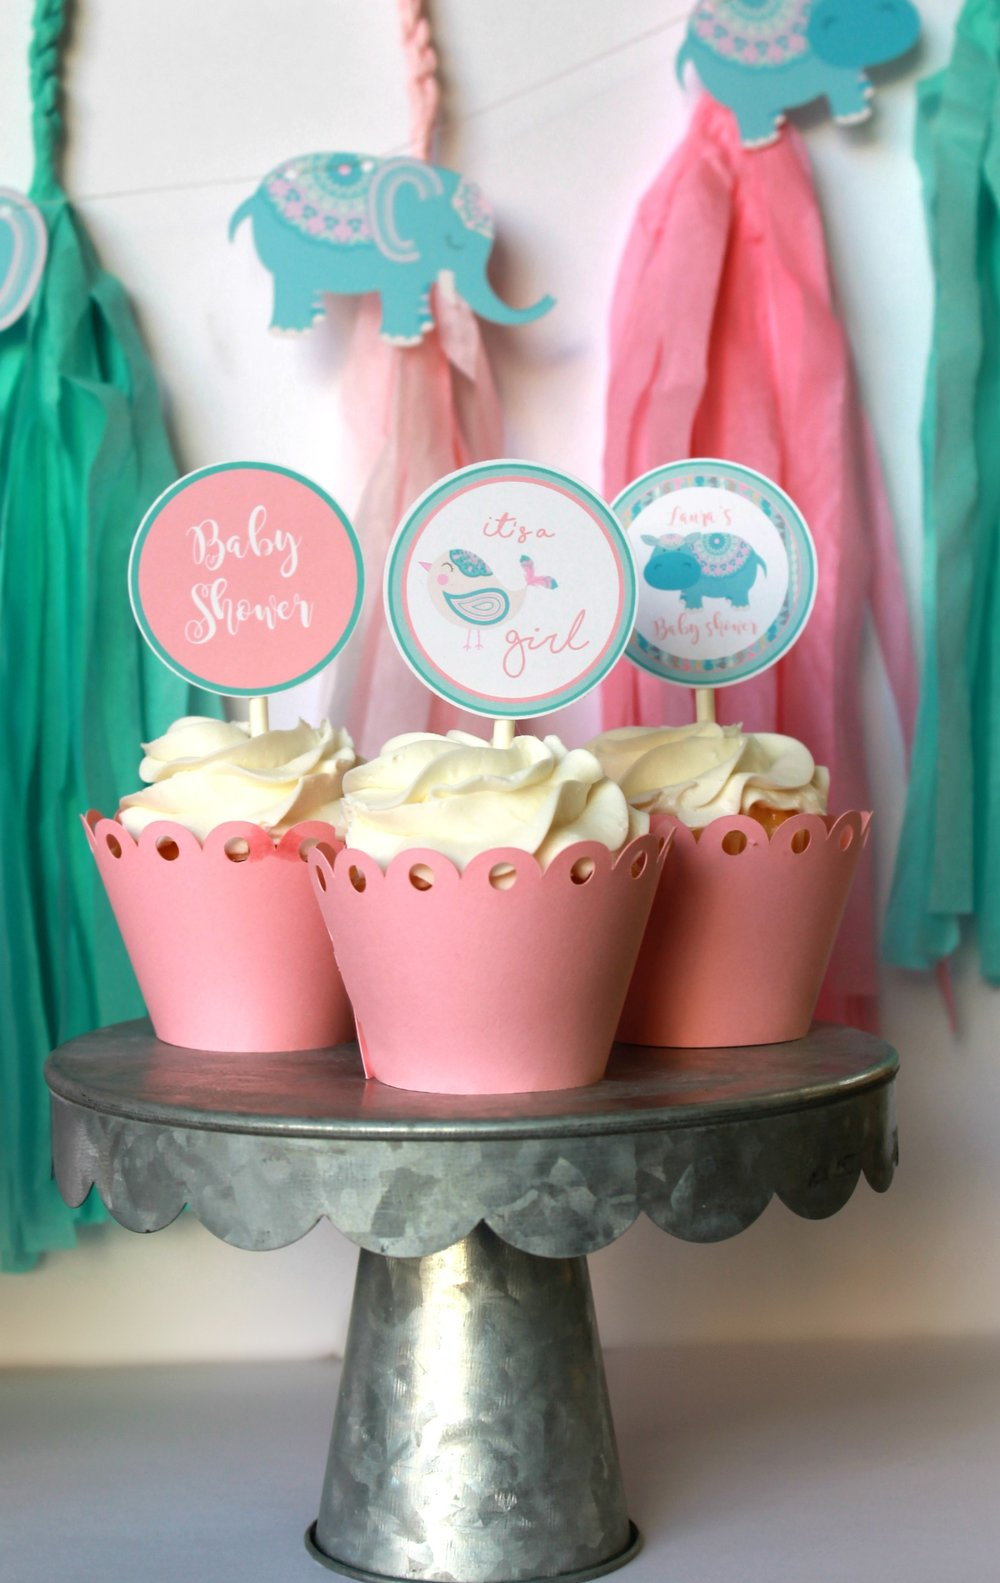 Virtual Baby Shower-It's A girl Cupcake toppers-www.SugarPartiesLA.com.jpg